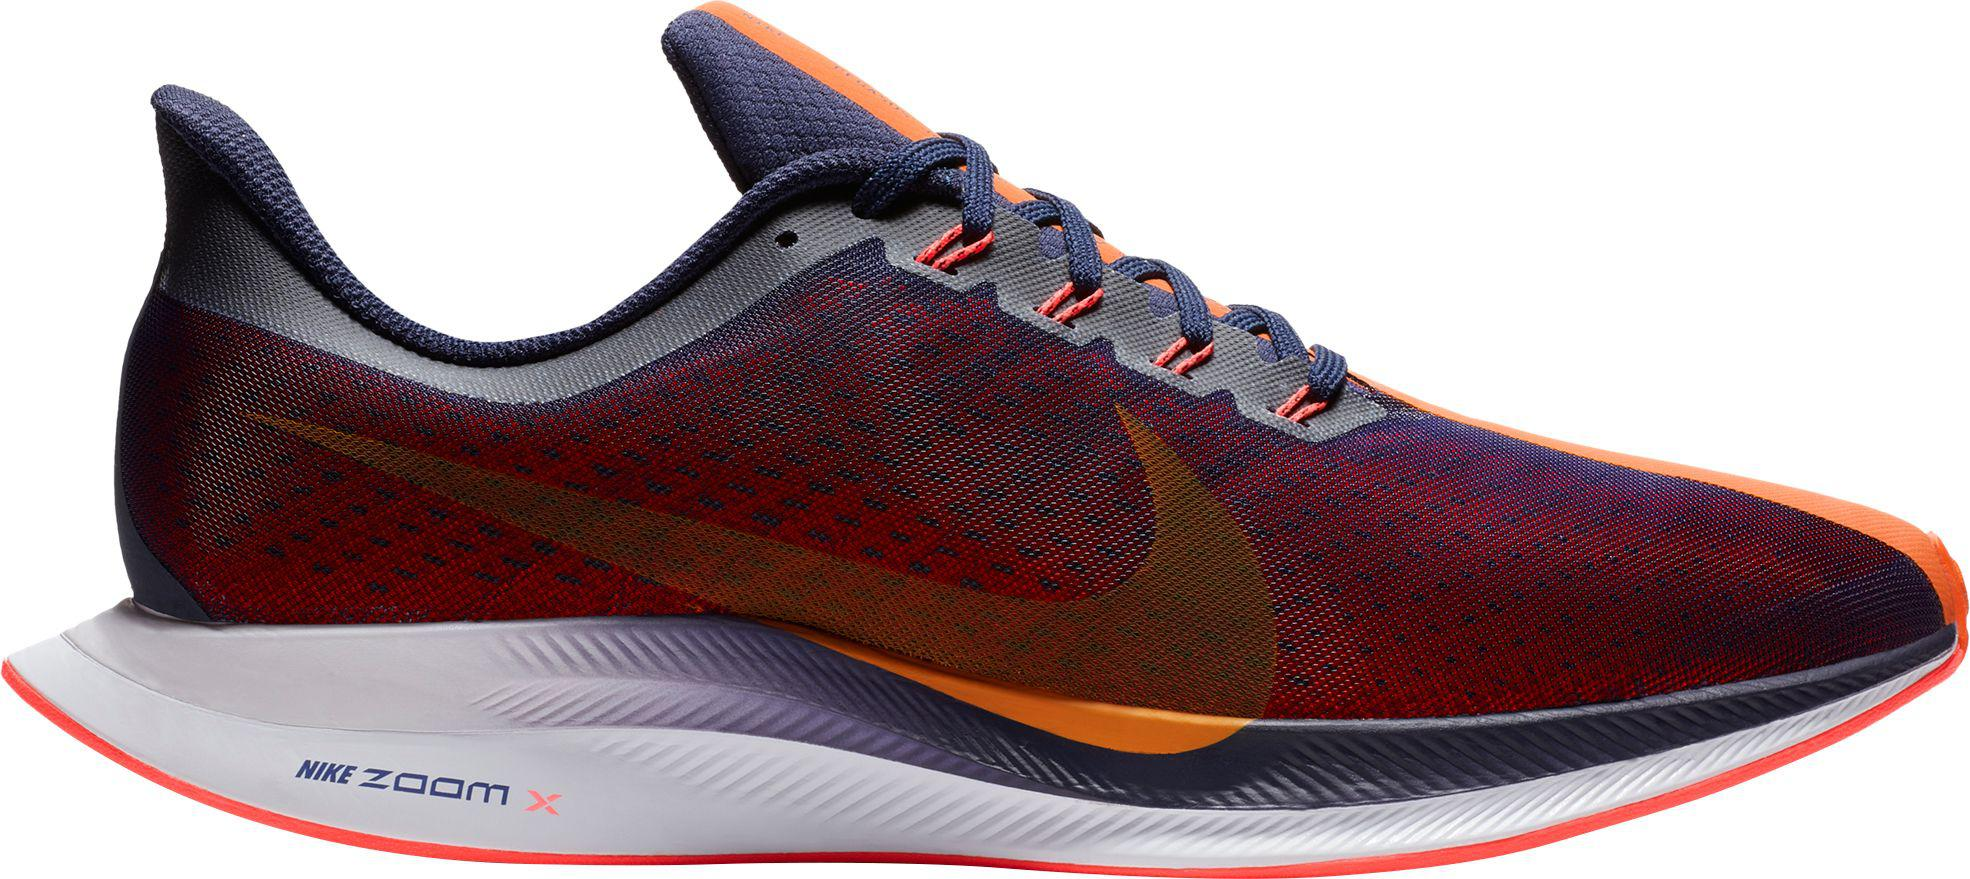 3179882259a7 Nike - Multicolor Air Zoom Pegasus 35 Turbo Running Shoes for Men - Lyst